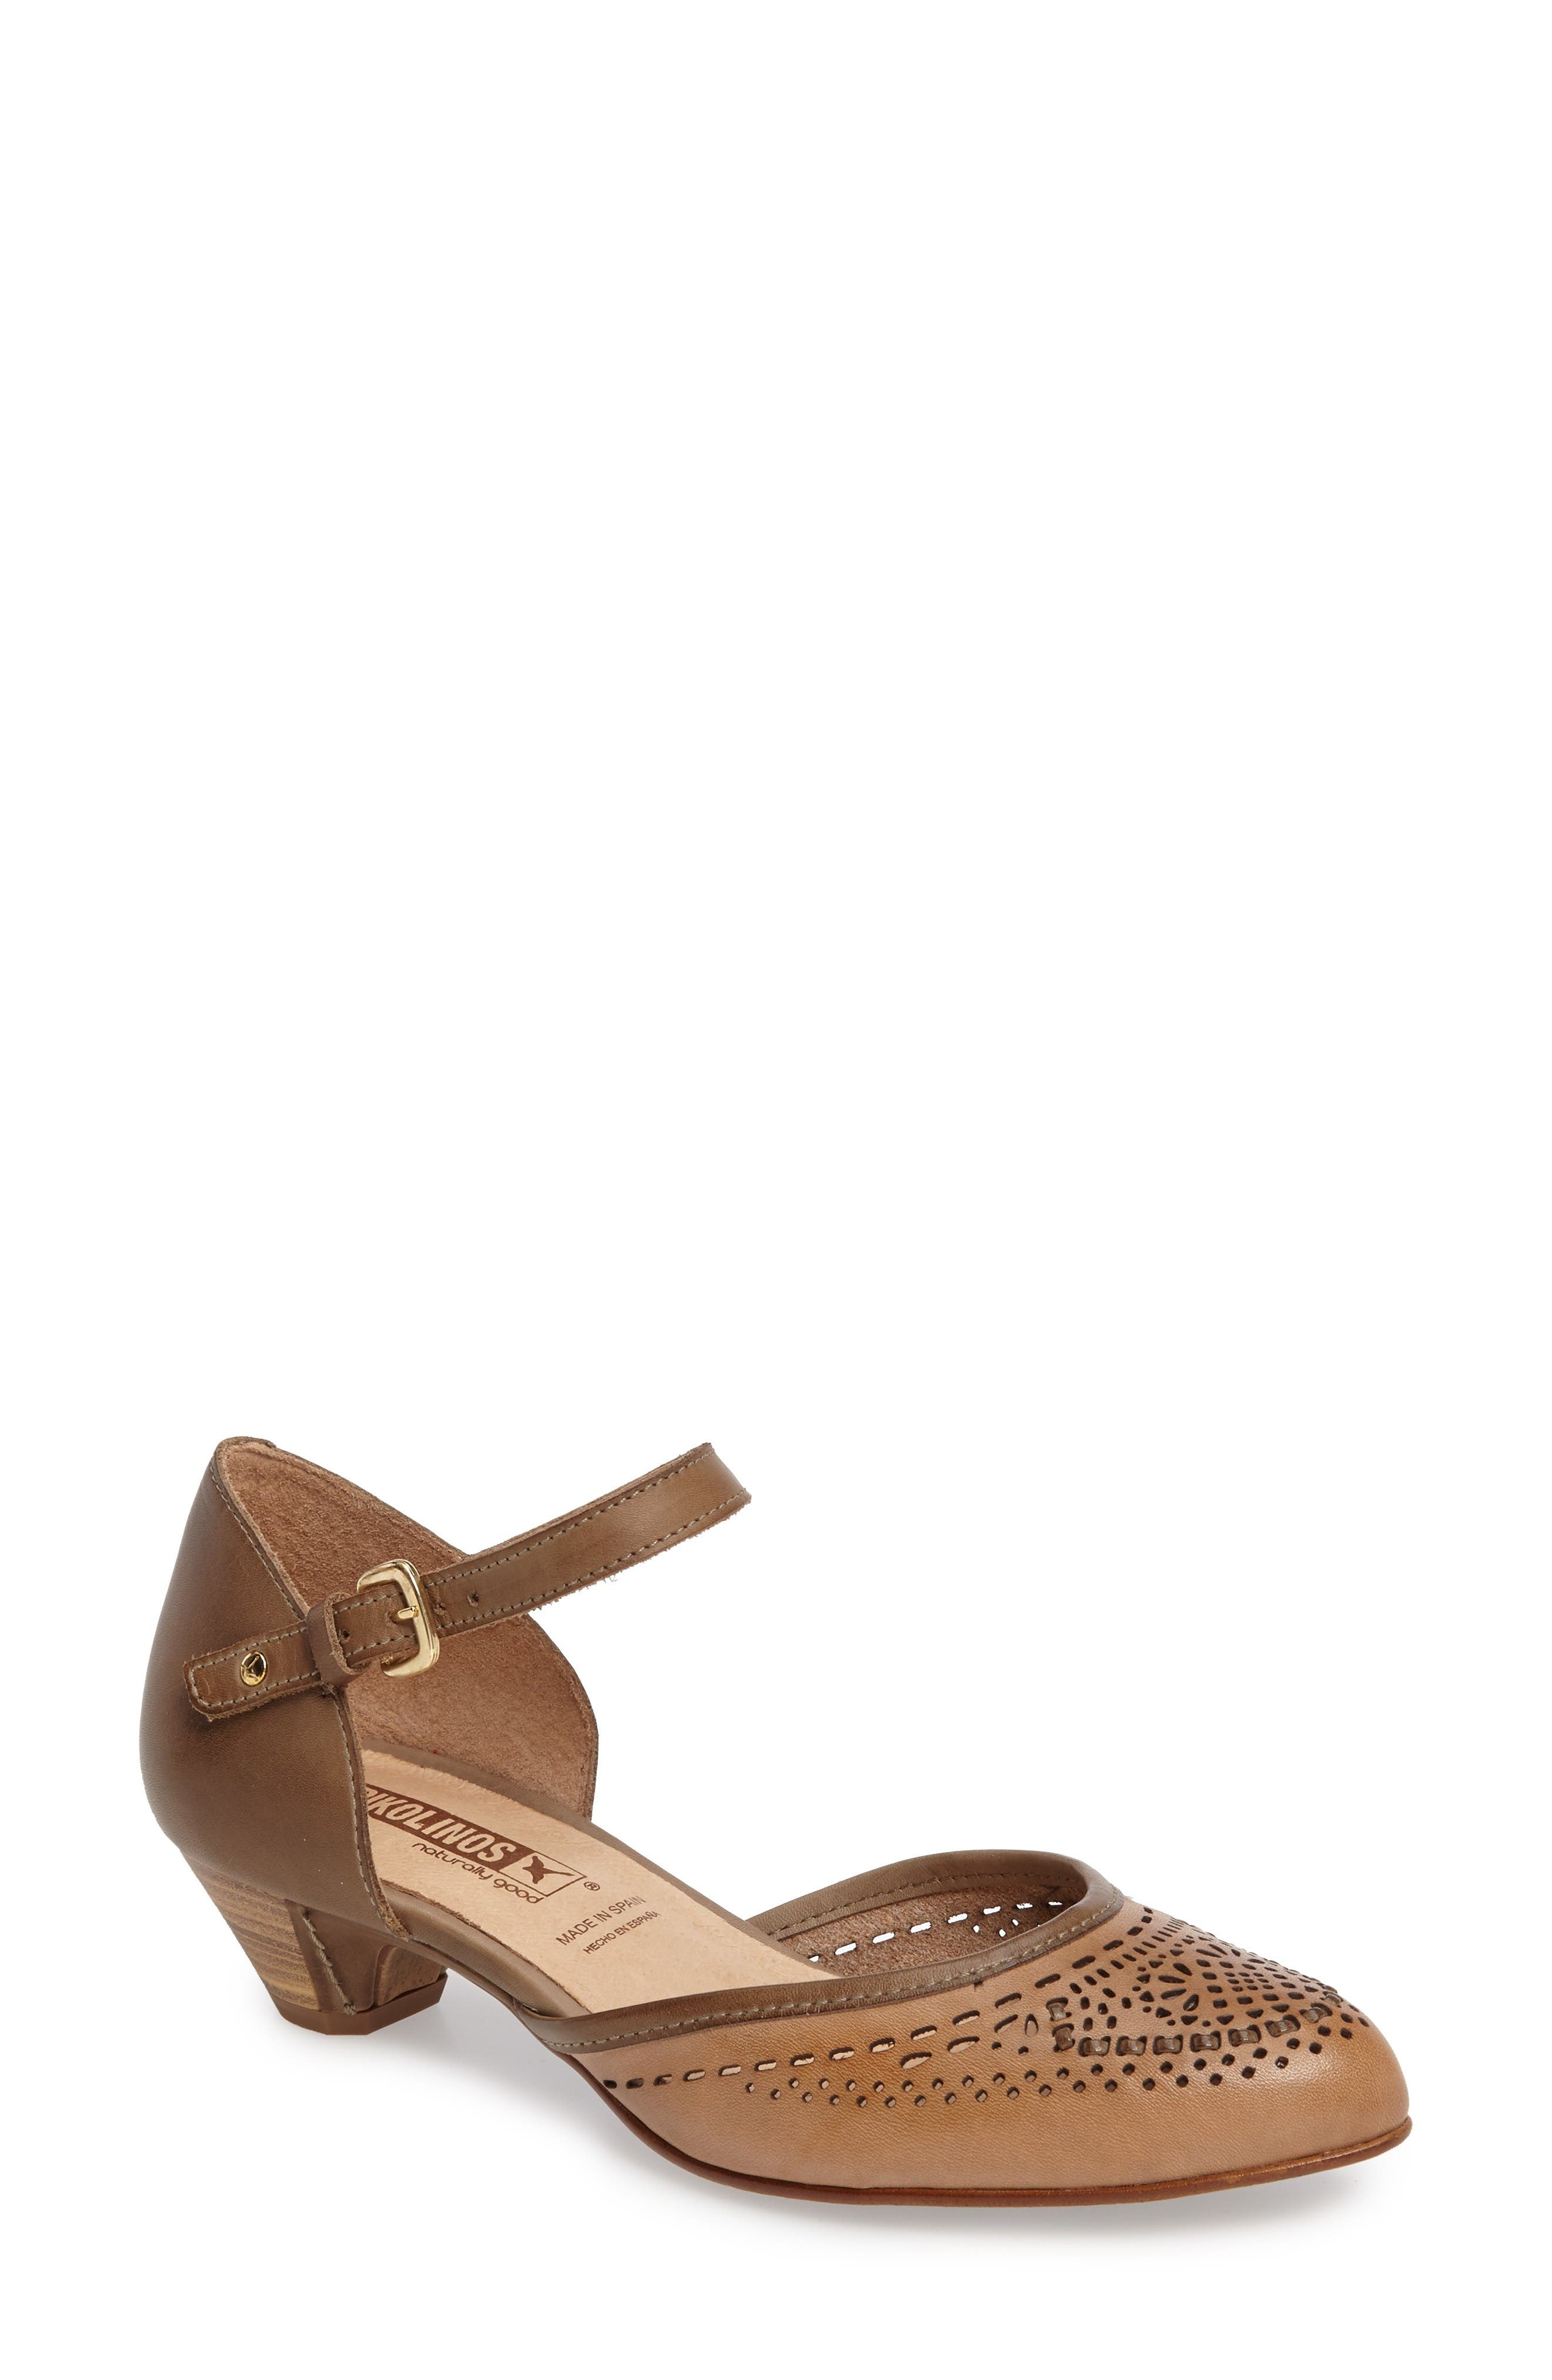 Main Image - PIKOLINOS 'Elba' Perforated Leather Ankle Strap Sandal (Women)